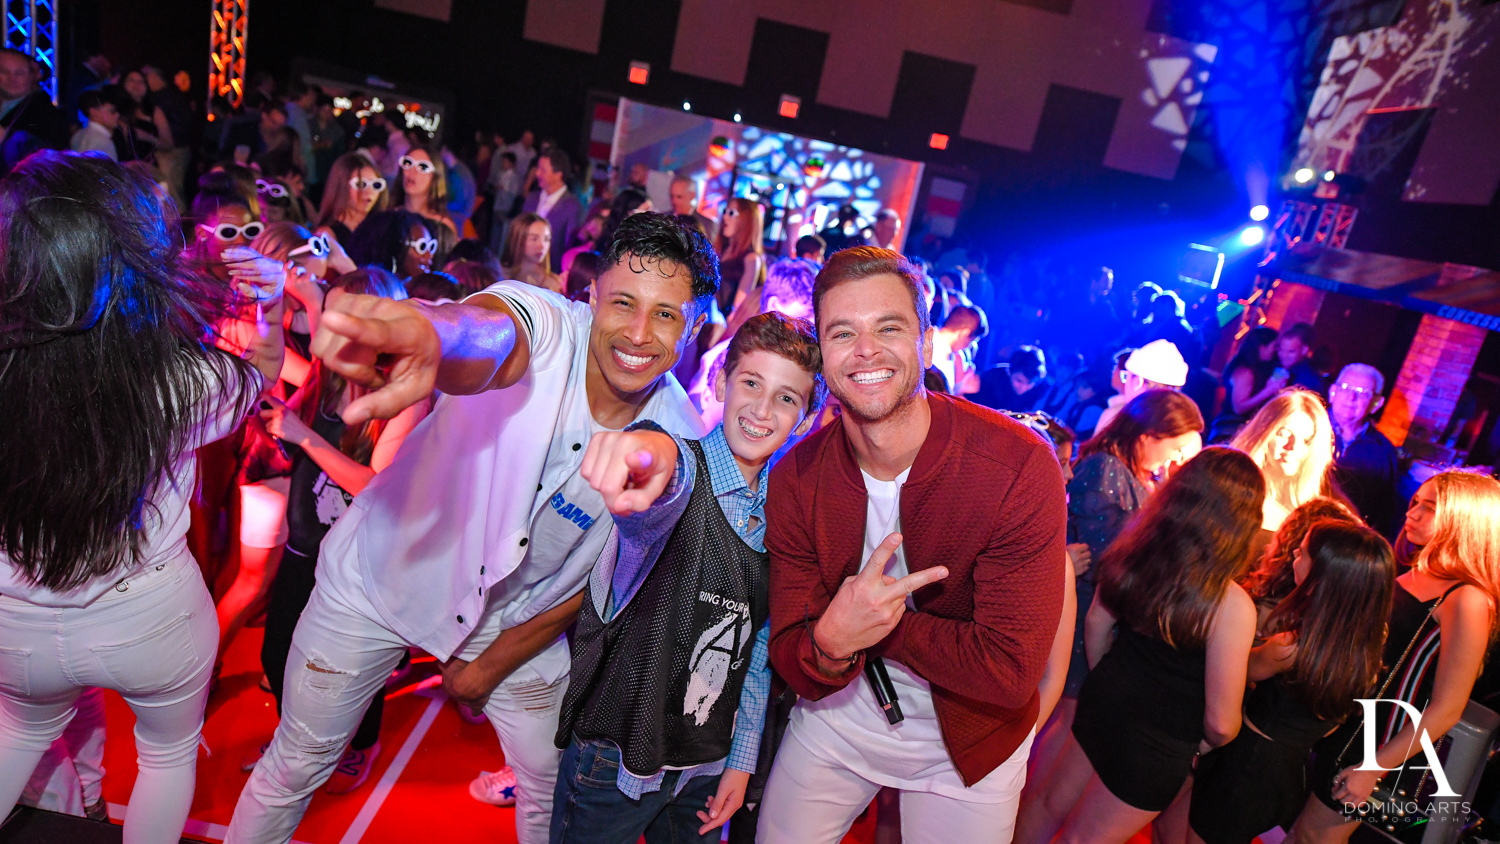 ross from rock with u at Fun Basketball Theme Bar Mitzvah at The Fillmore Miami Beach by Domino Arts Photography